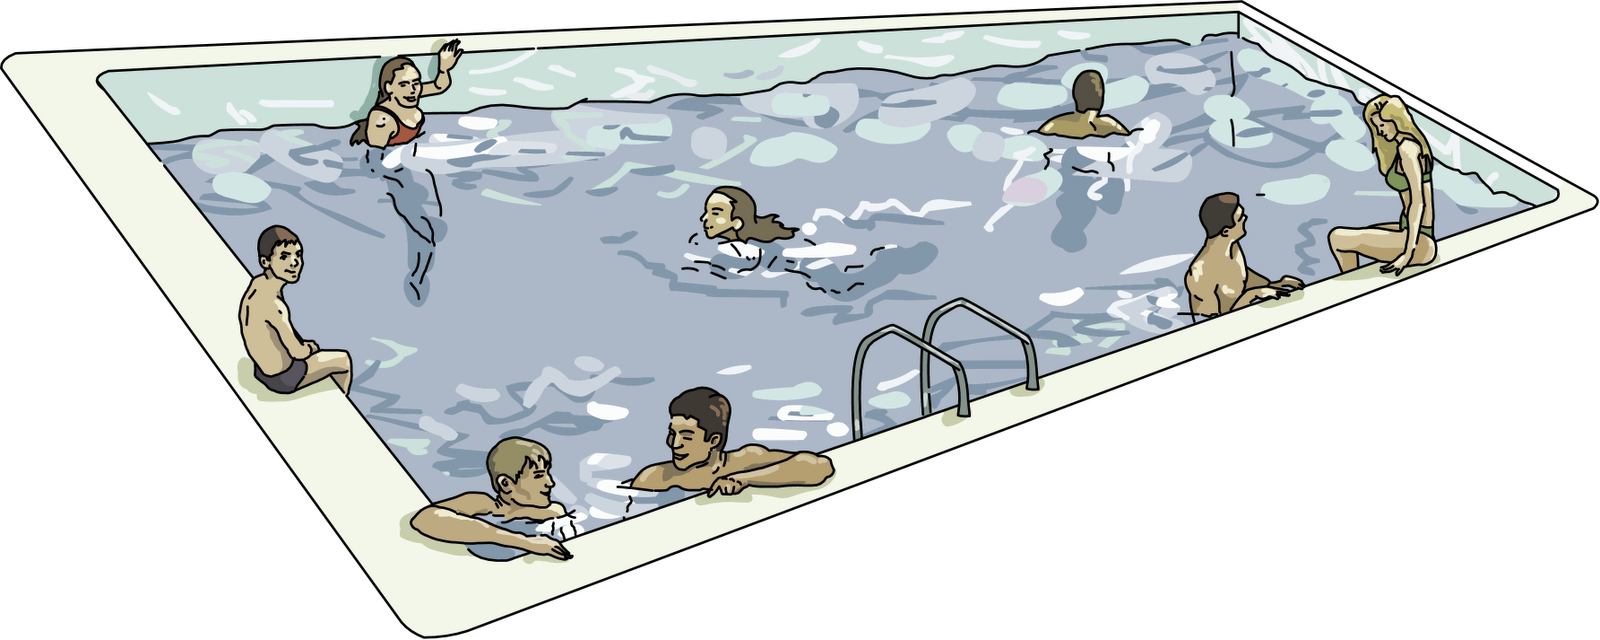 Pool clipart. Swimming group with items